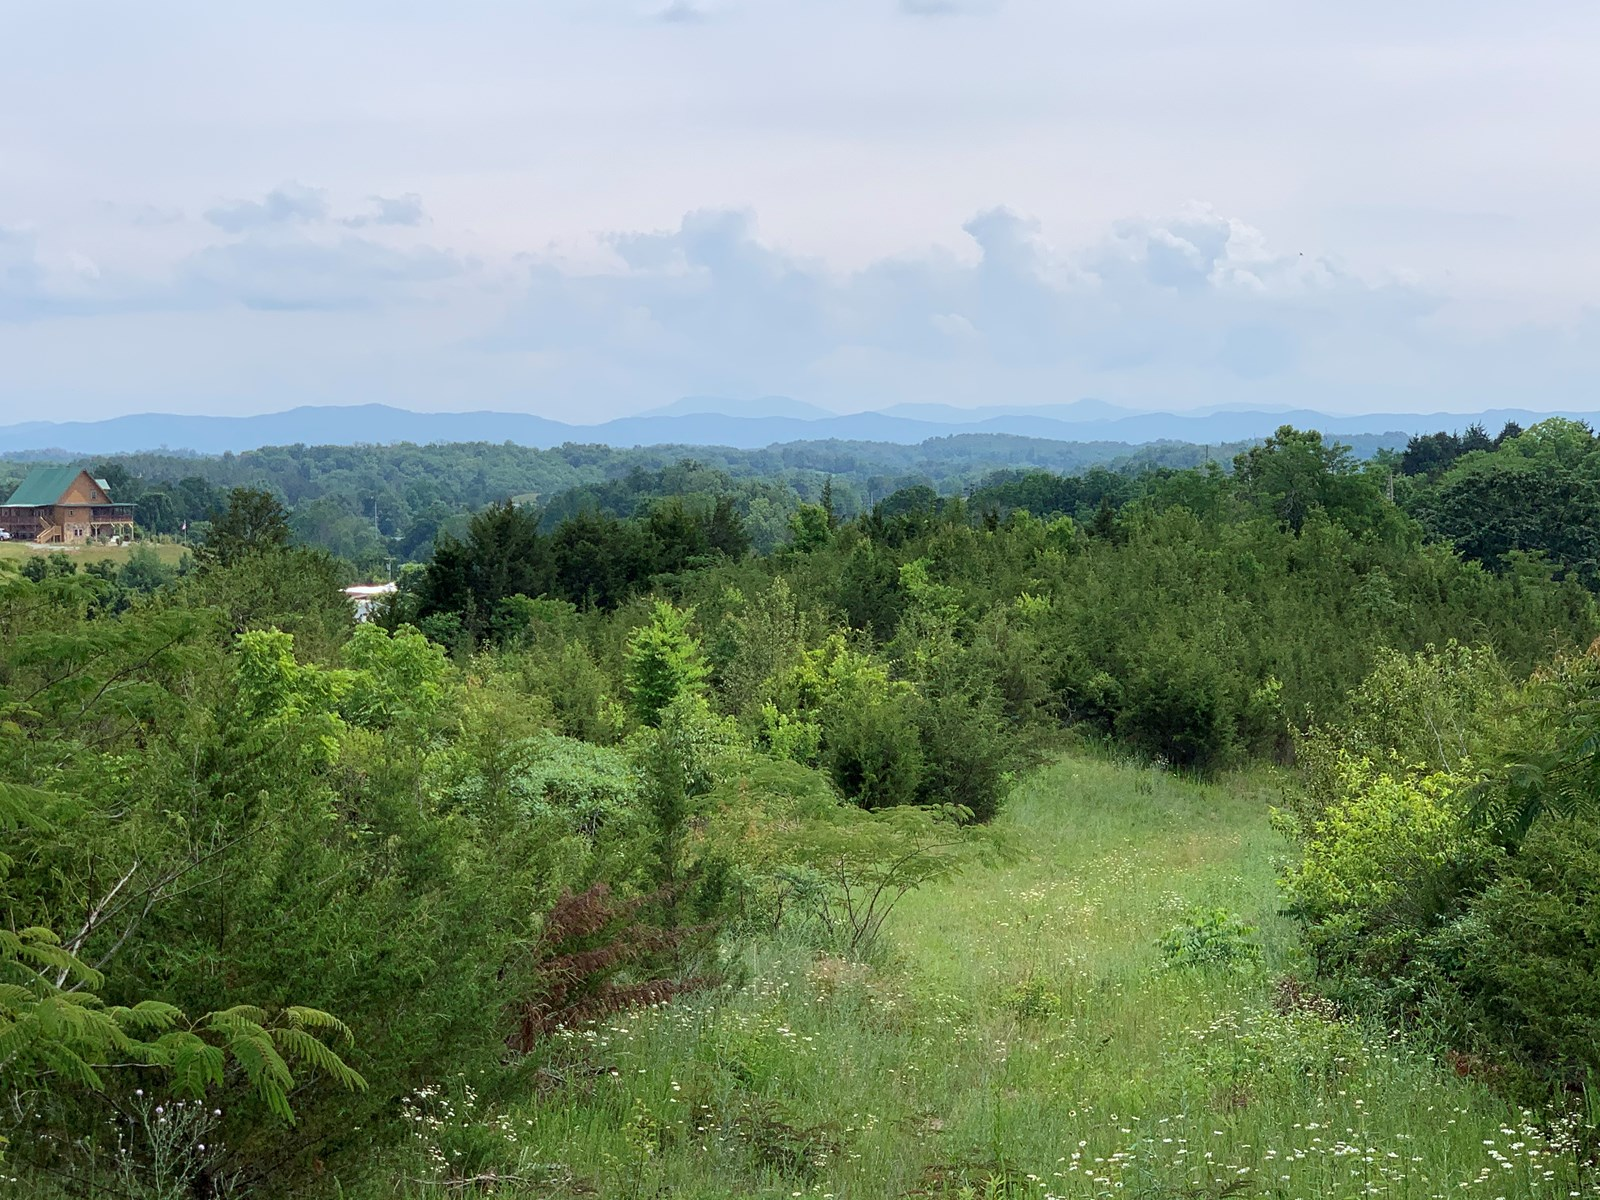 Unrestricted Land For Sale Greene County Tennessee